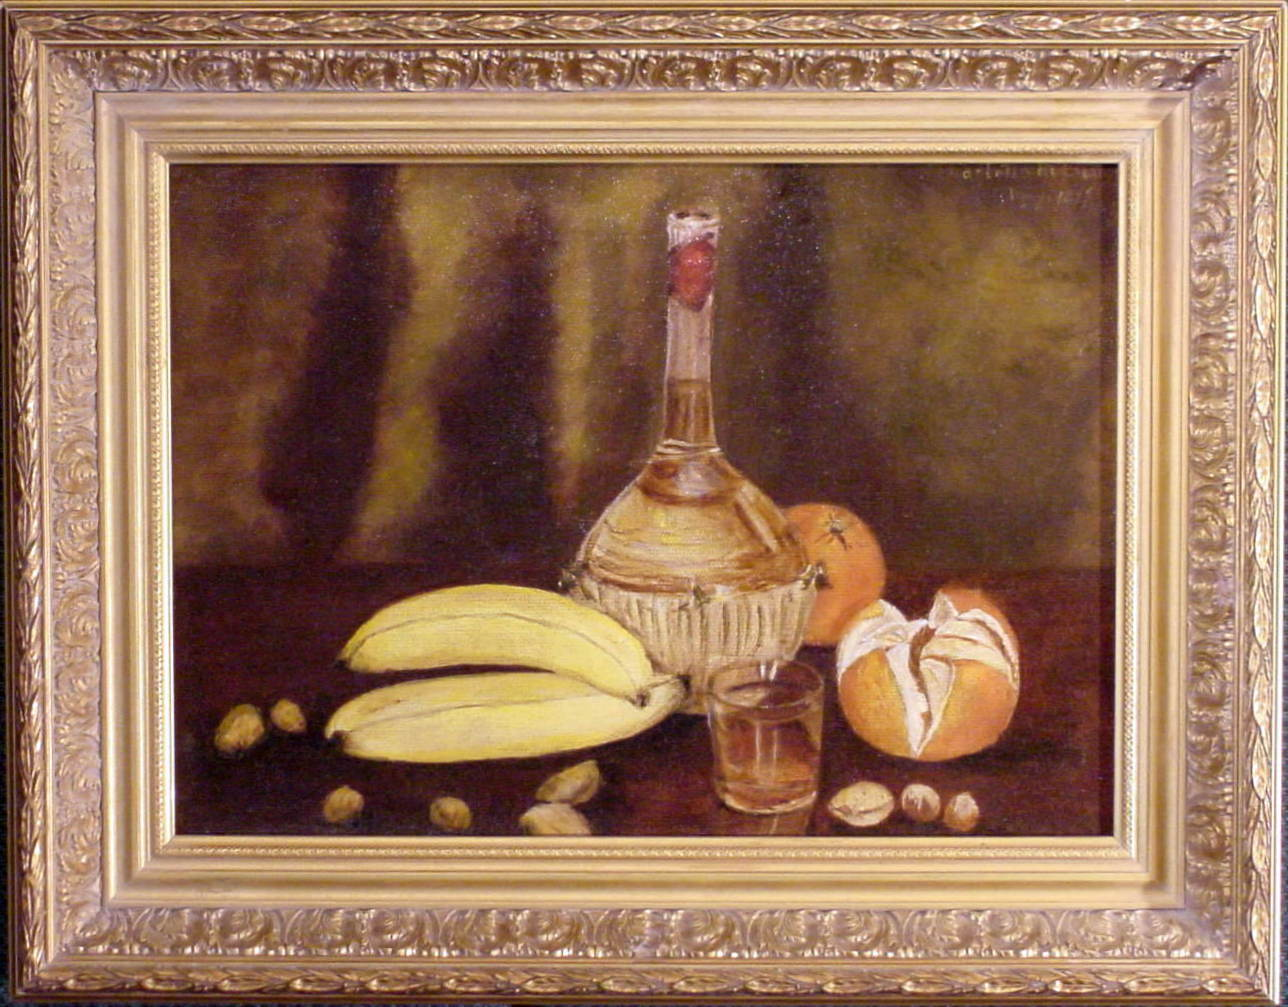 Still life with oranges and bananas